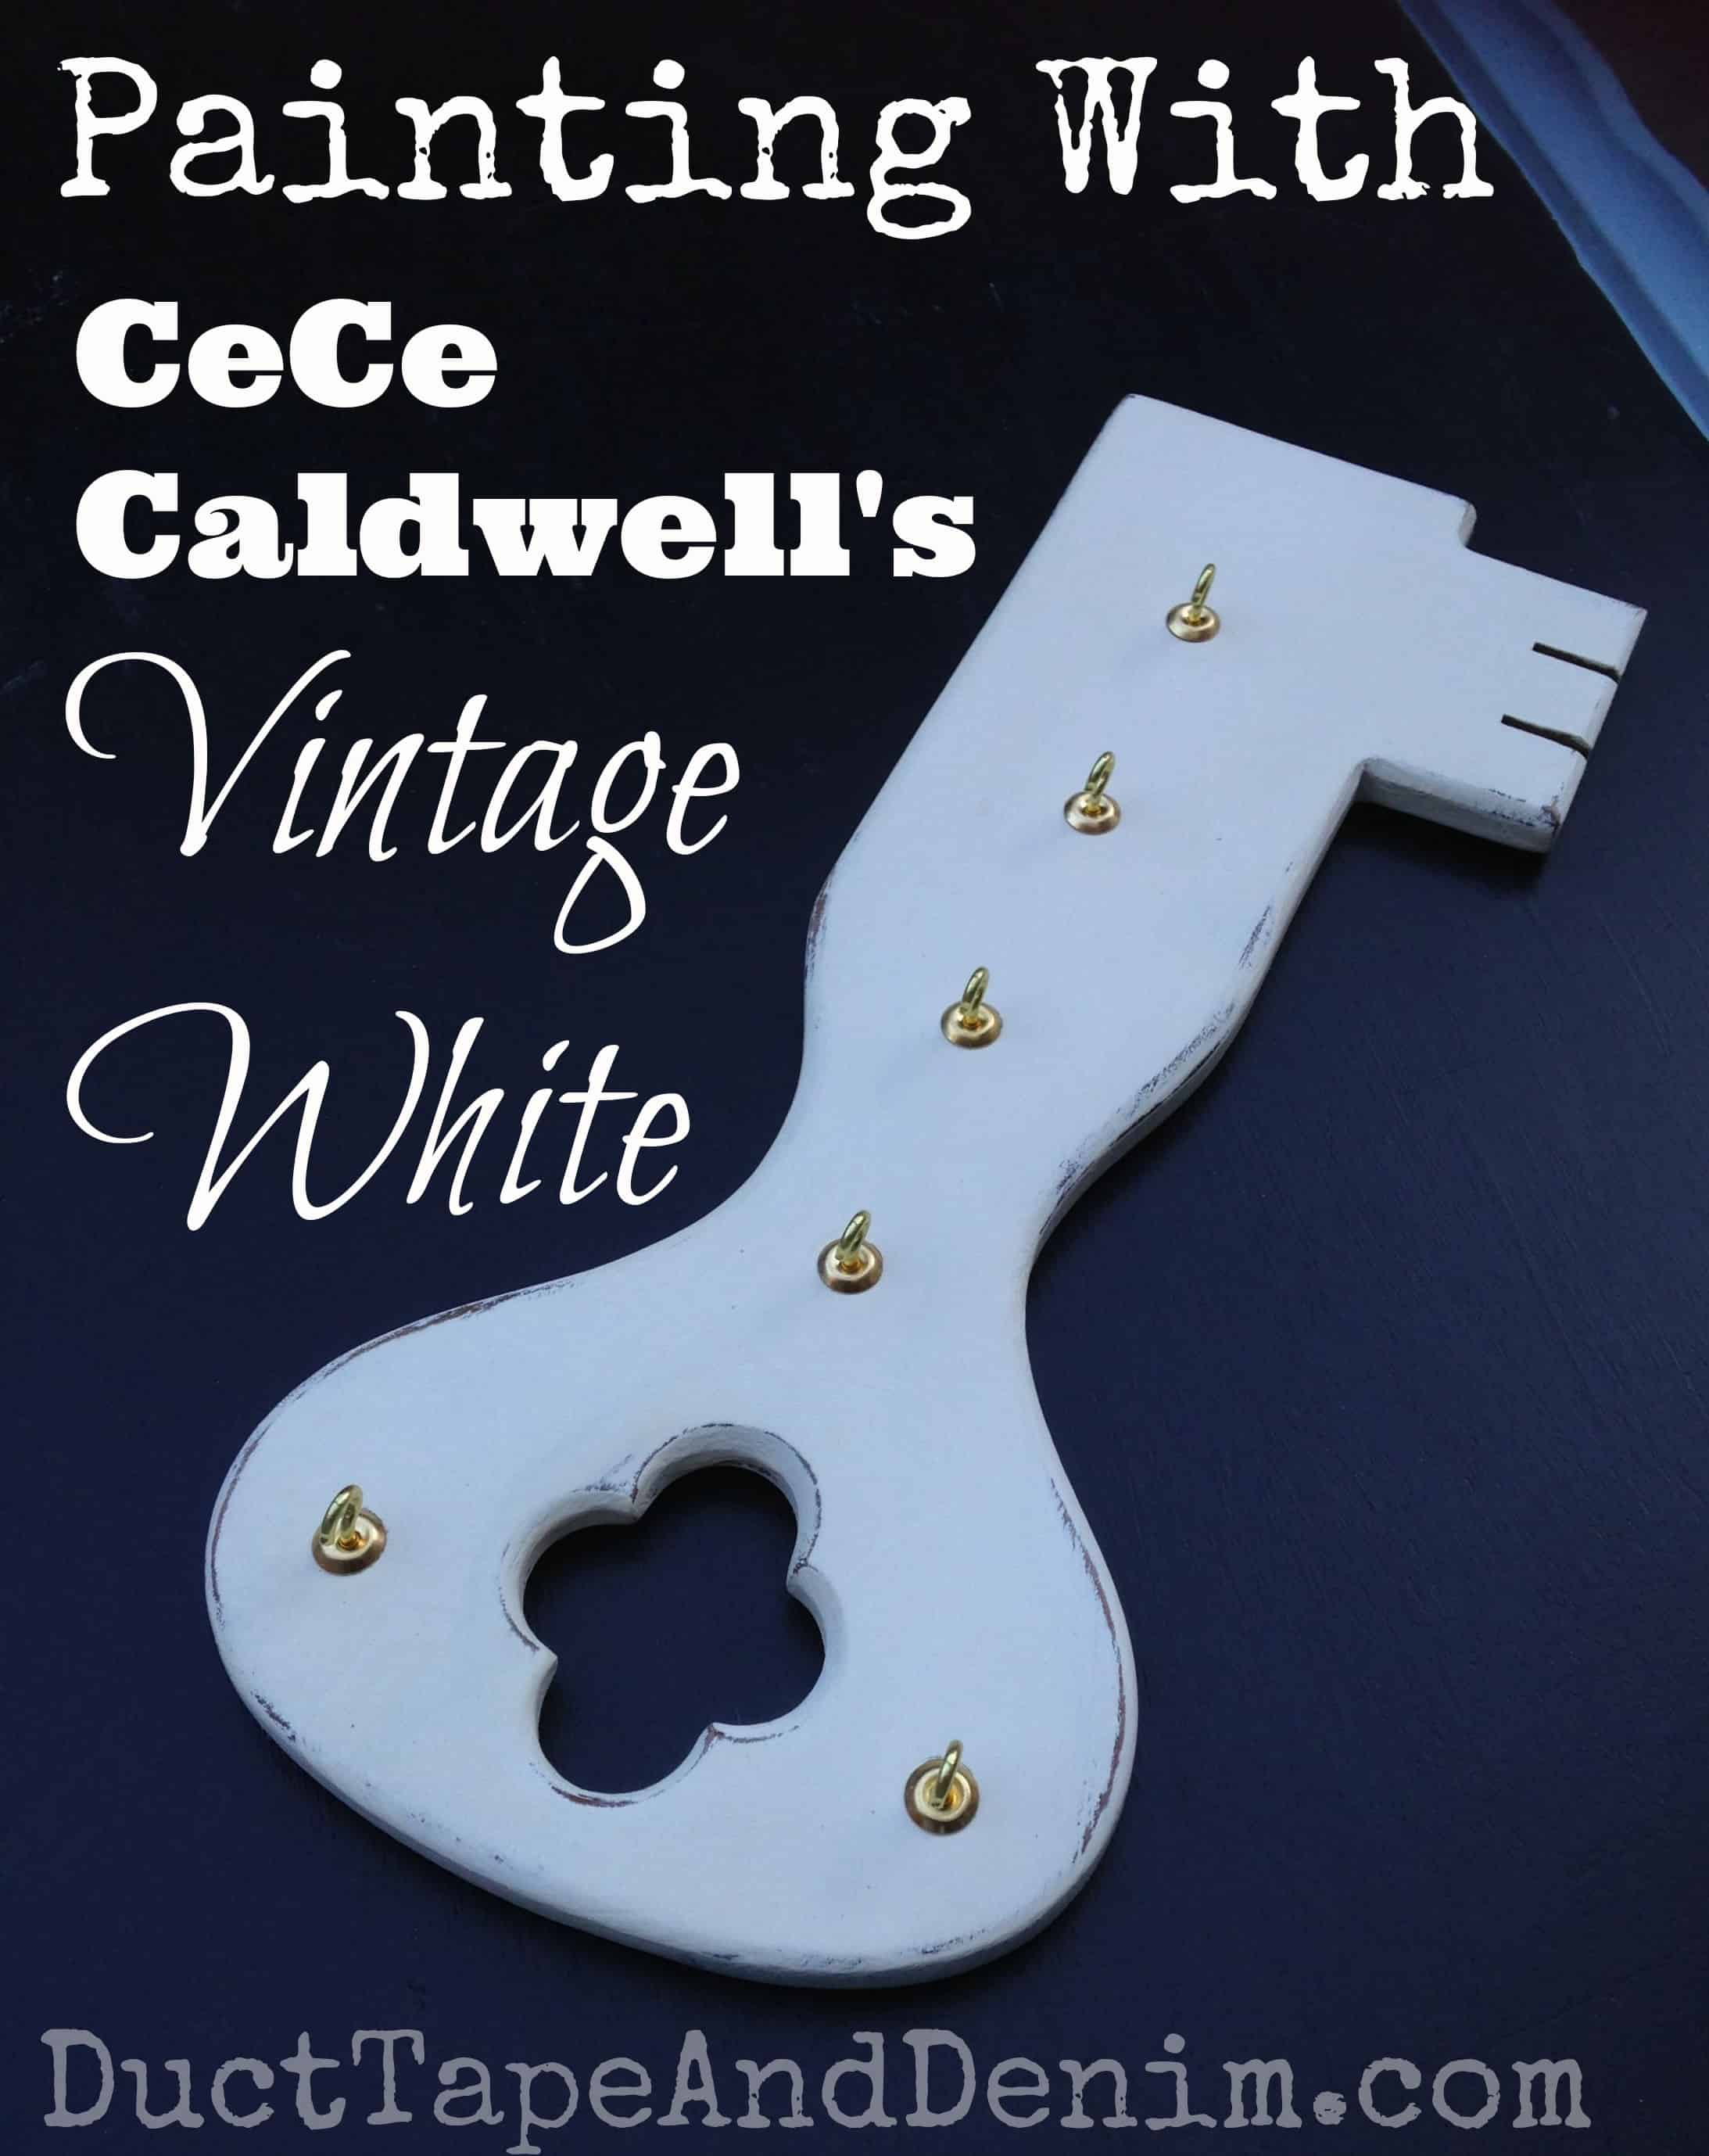 Painting with CeCe Caldwell's Vintage White